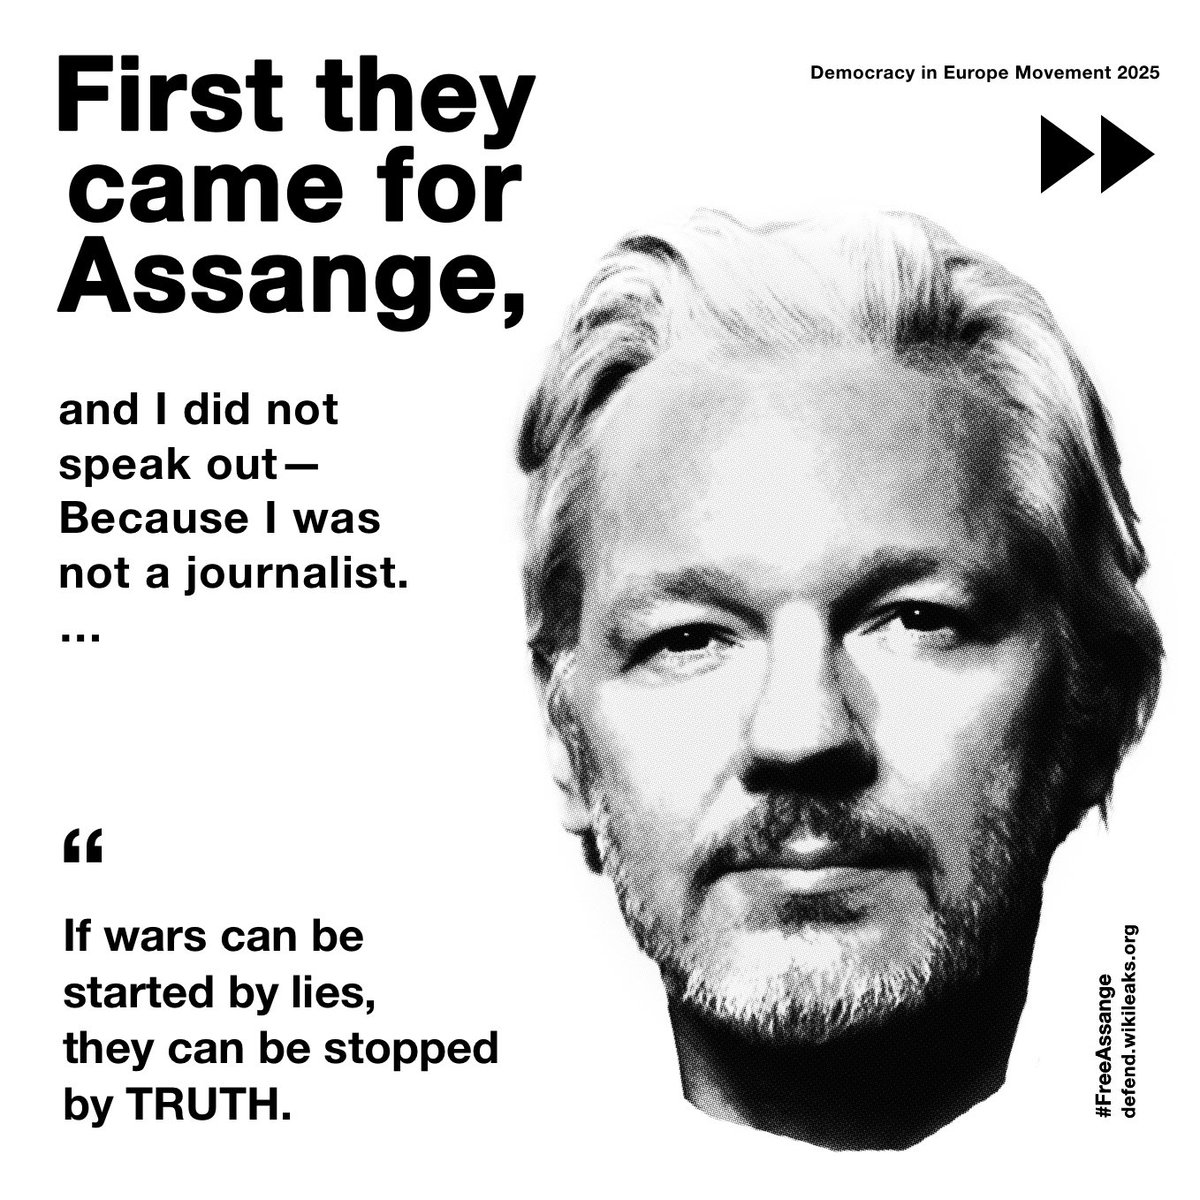 First they came for Assange ... https://t.co/MESxAjE3wz